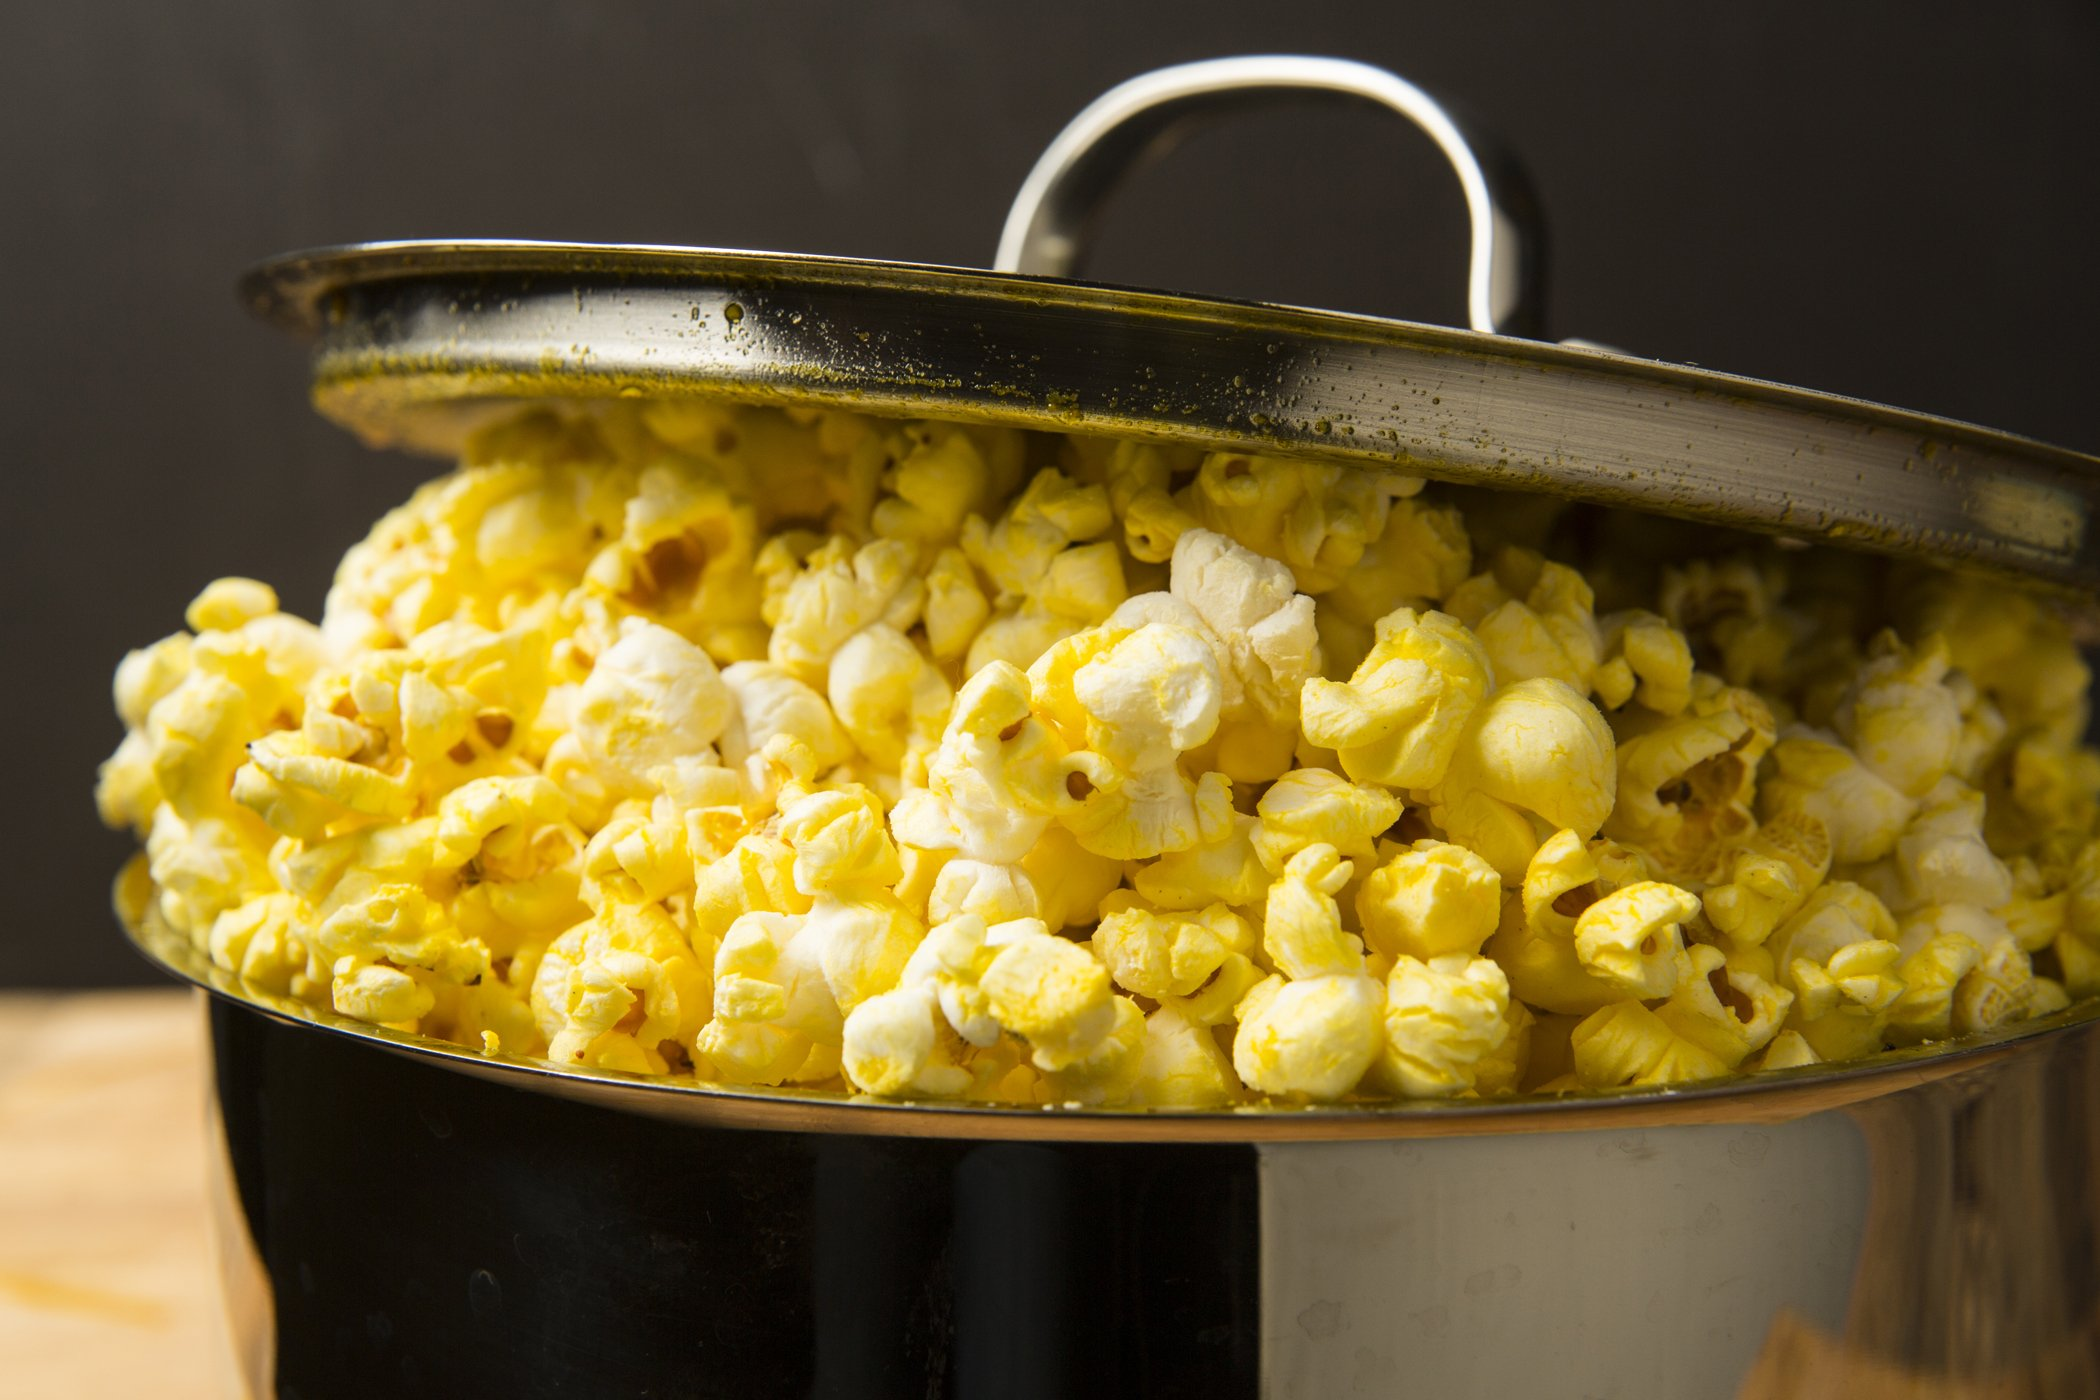 Franklin's Organic Popping Corn (7 lbs). Make Movie Theater Popcorn at Home. by Franklin's Gourmet Popcorn (Image #6)